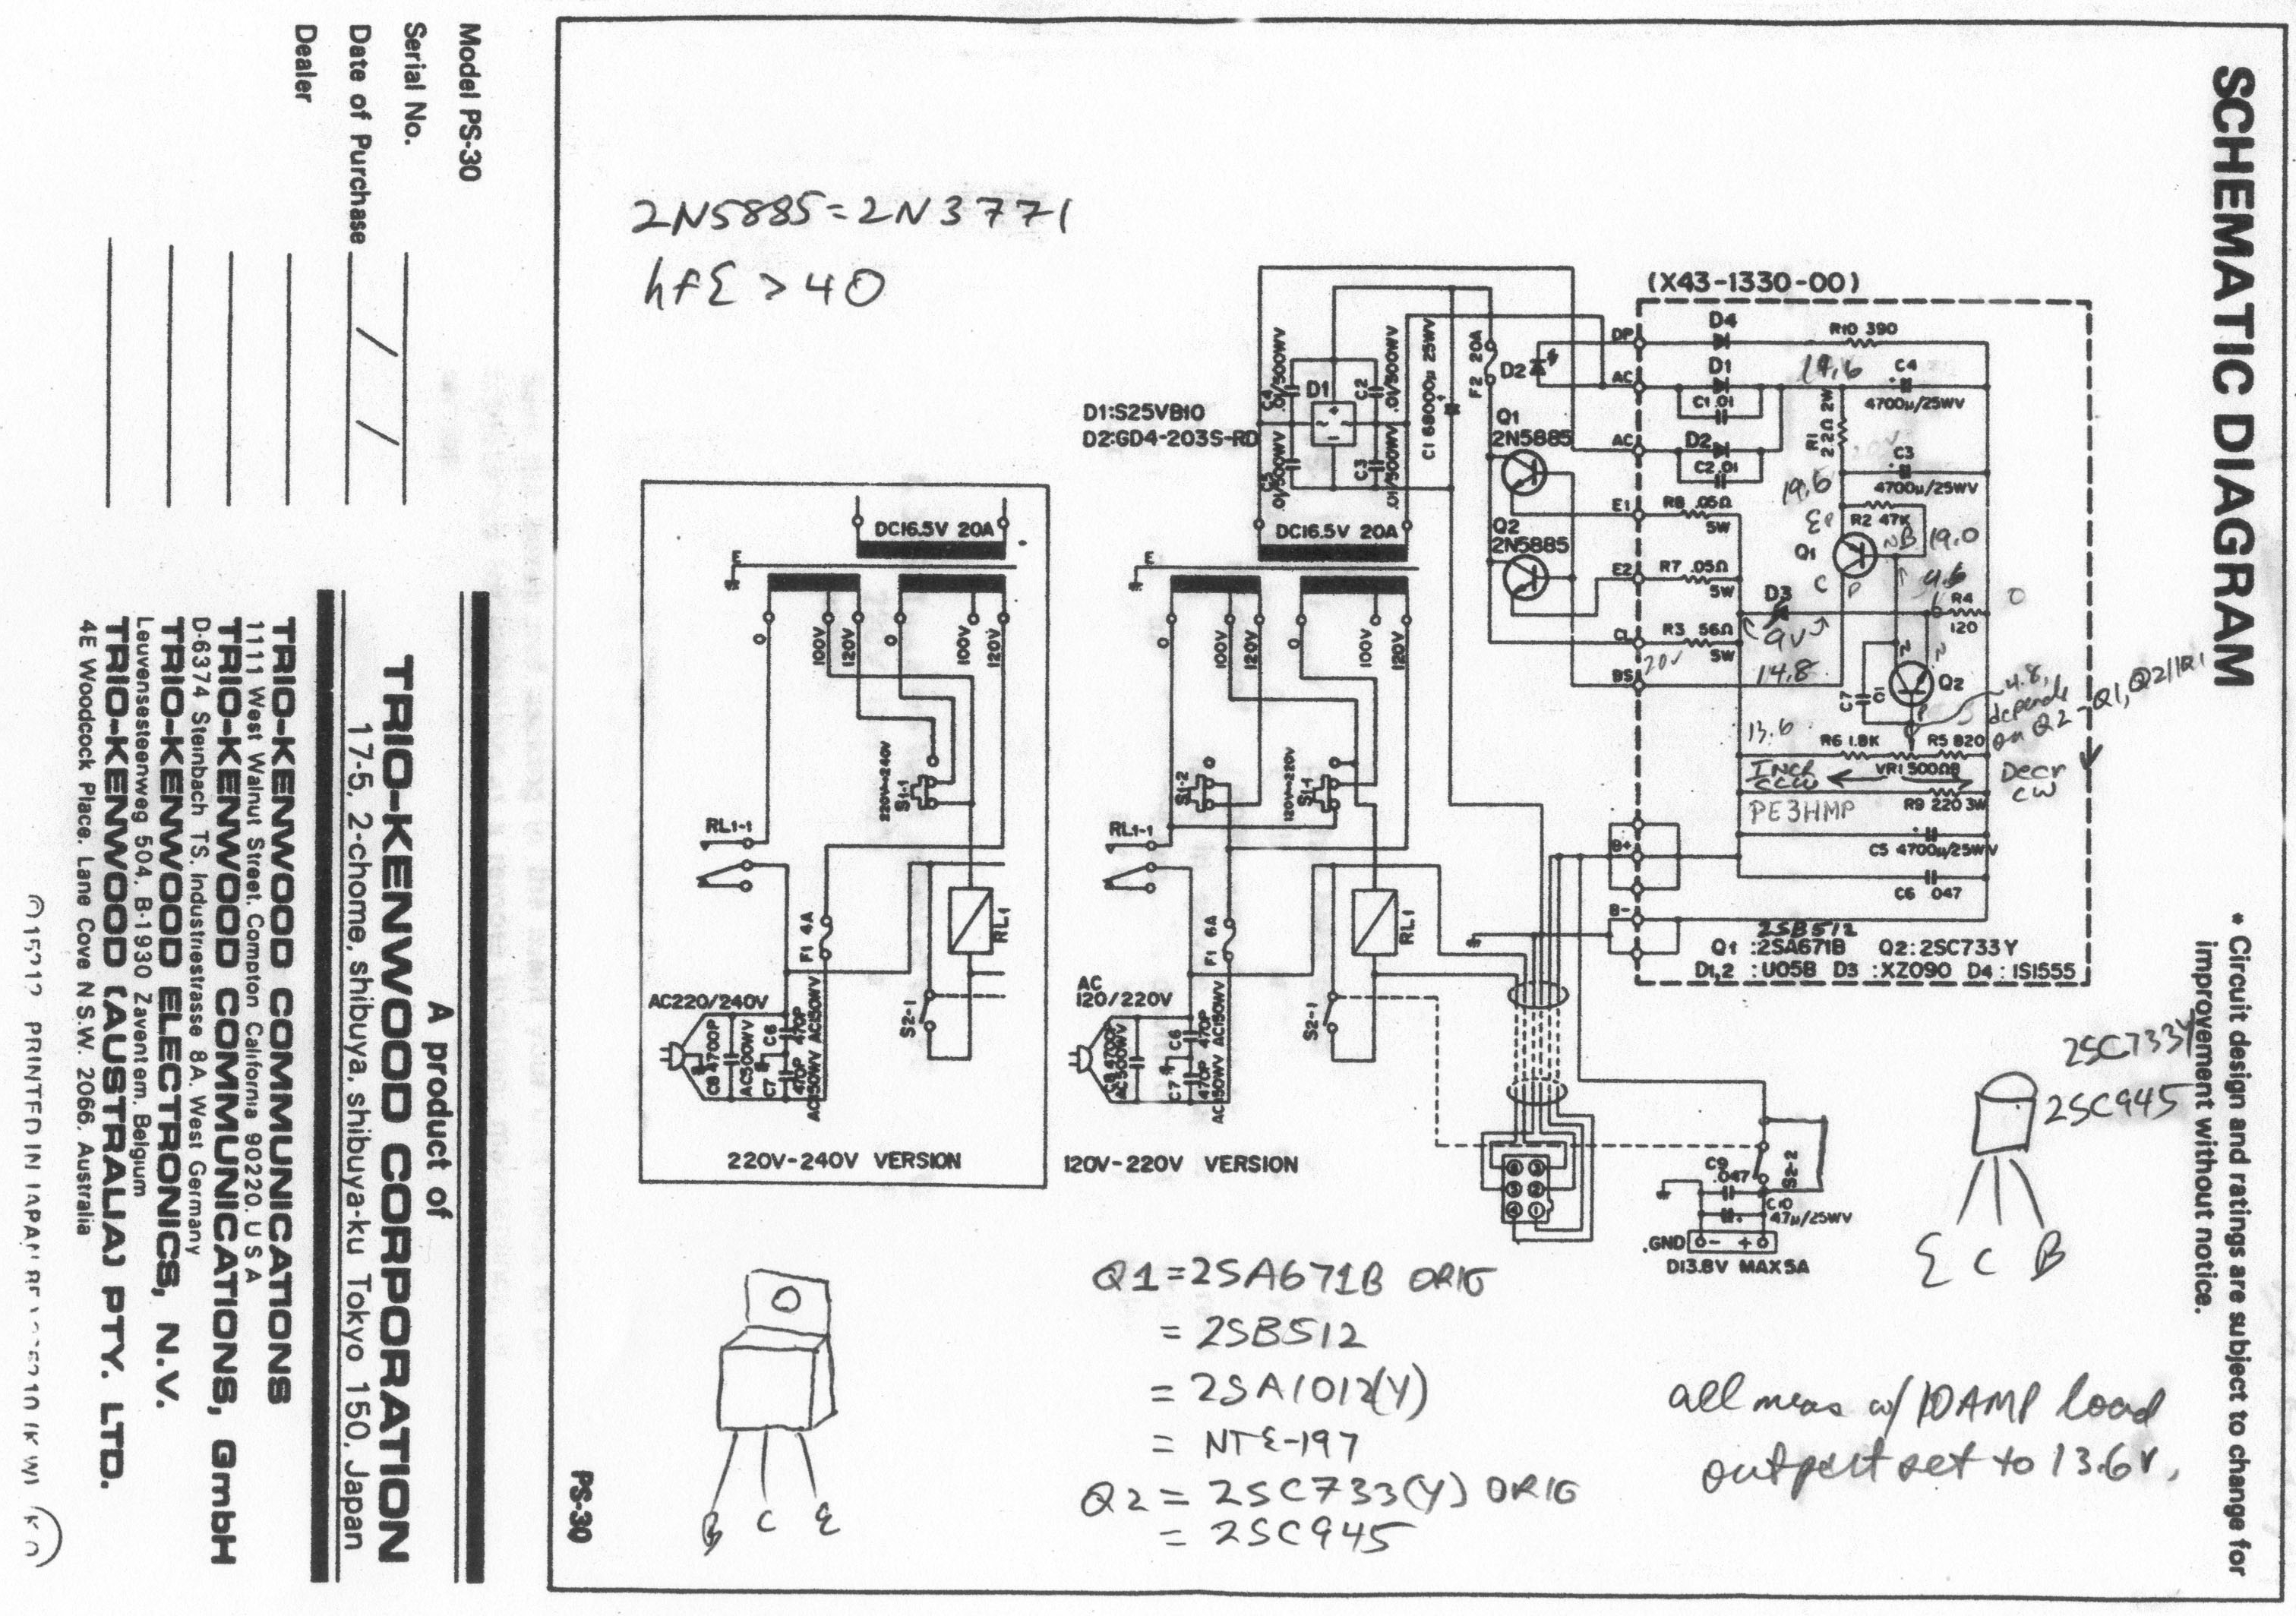 kenwood radio schematic index of /pub/radio_manuals/kenwood kenwood radio wiring colors